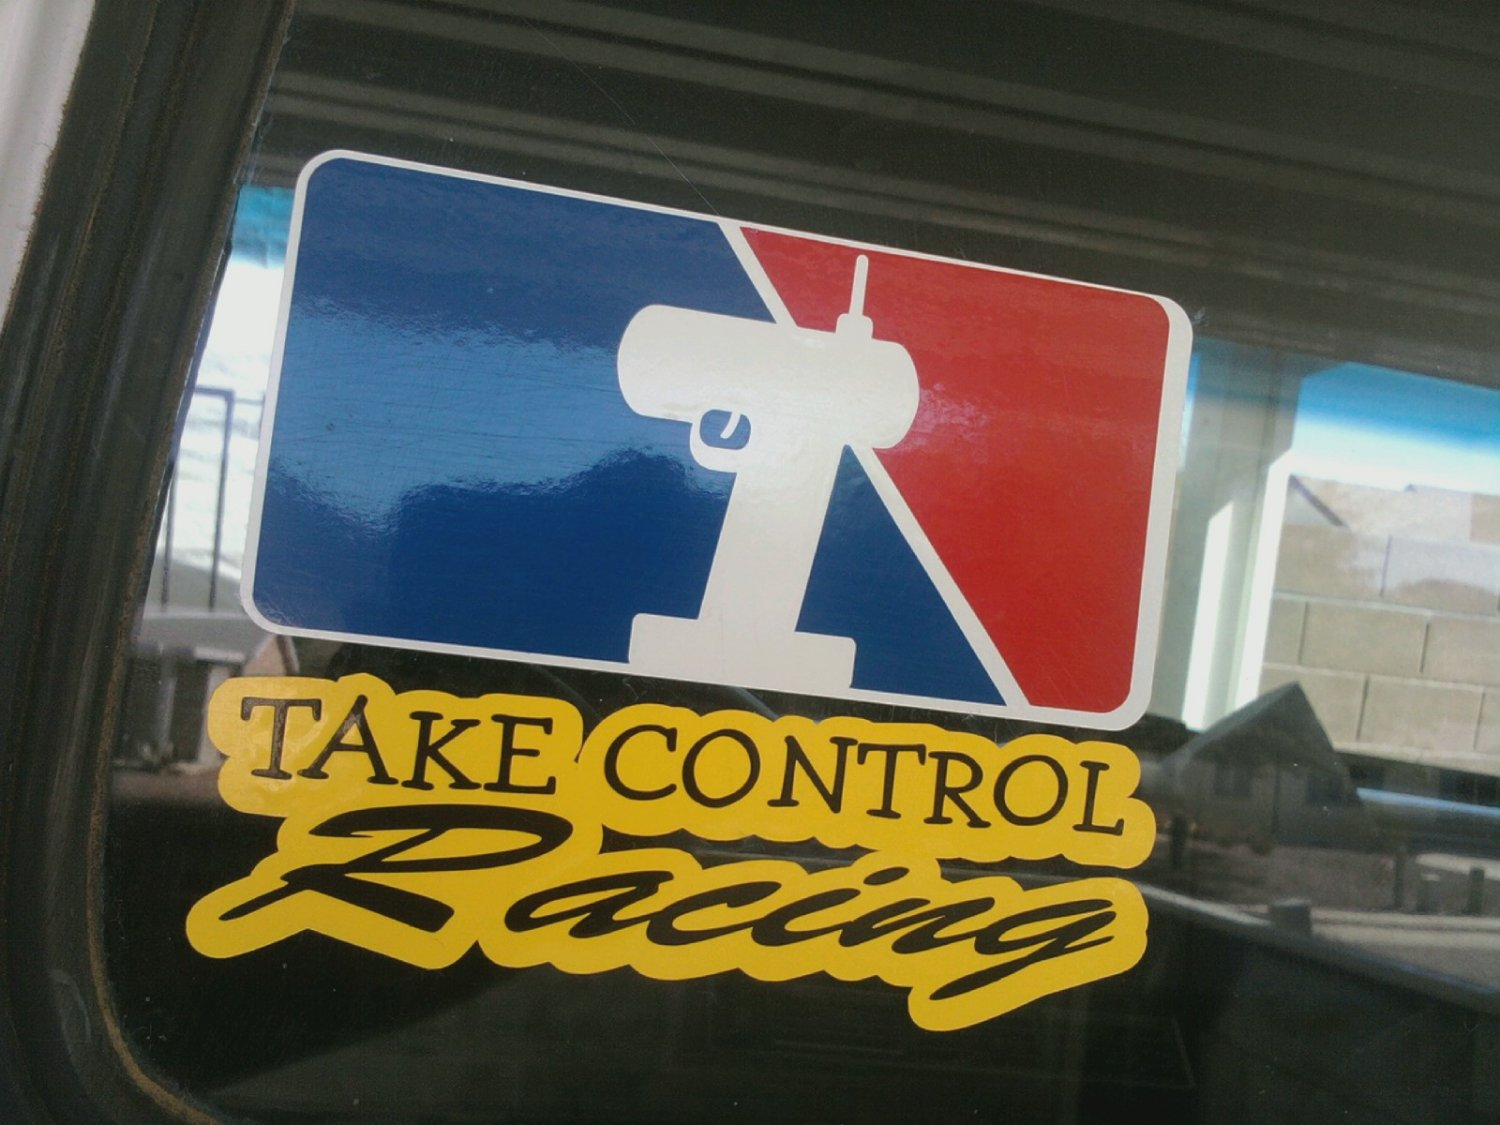 5x6 Inch Full Color TAKE CONTROL RACING Decal